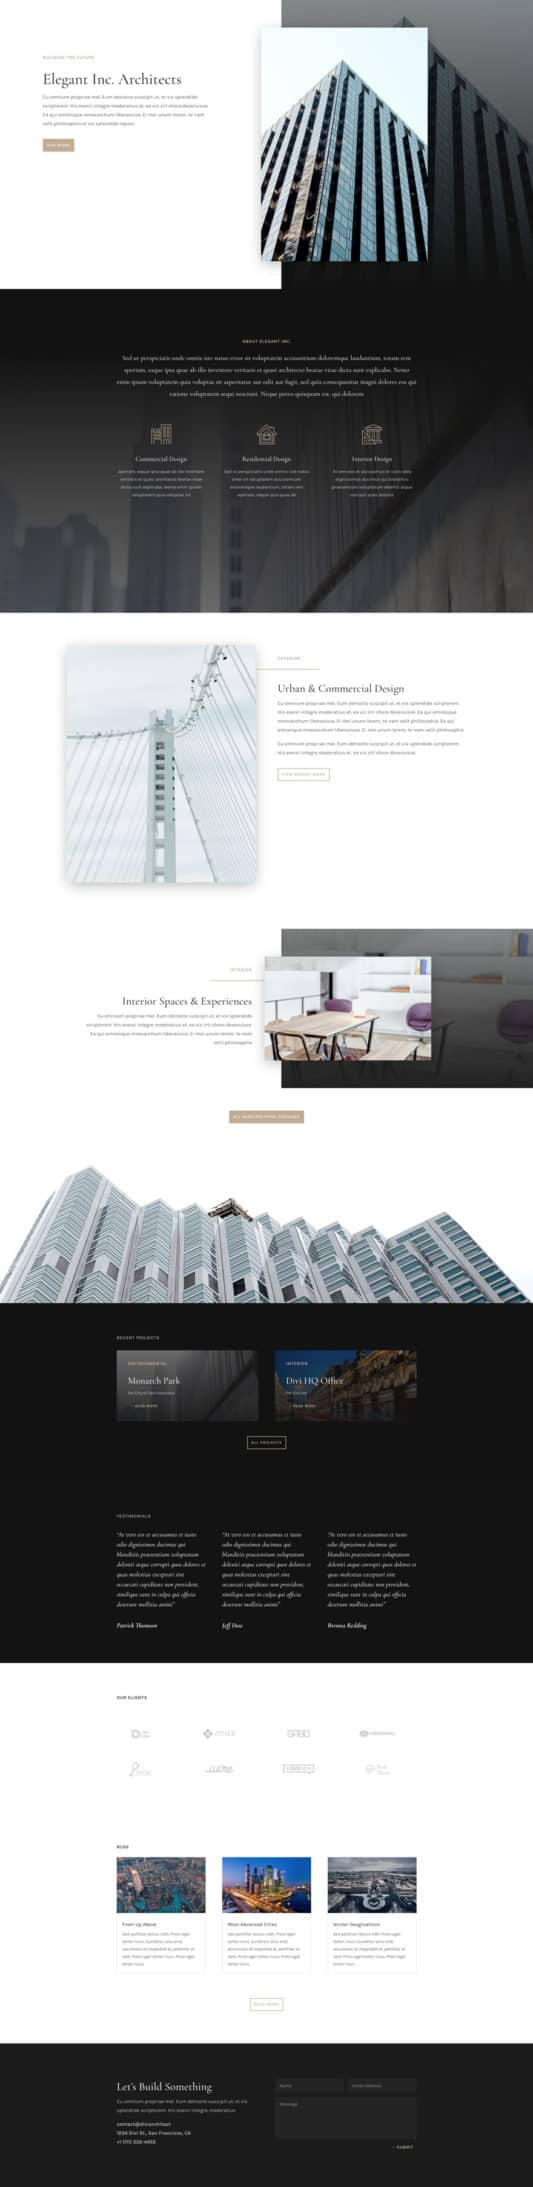 The Architecture Firm Page Style: Homepage Design 1